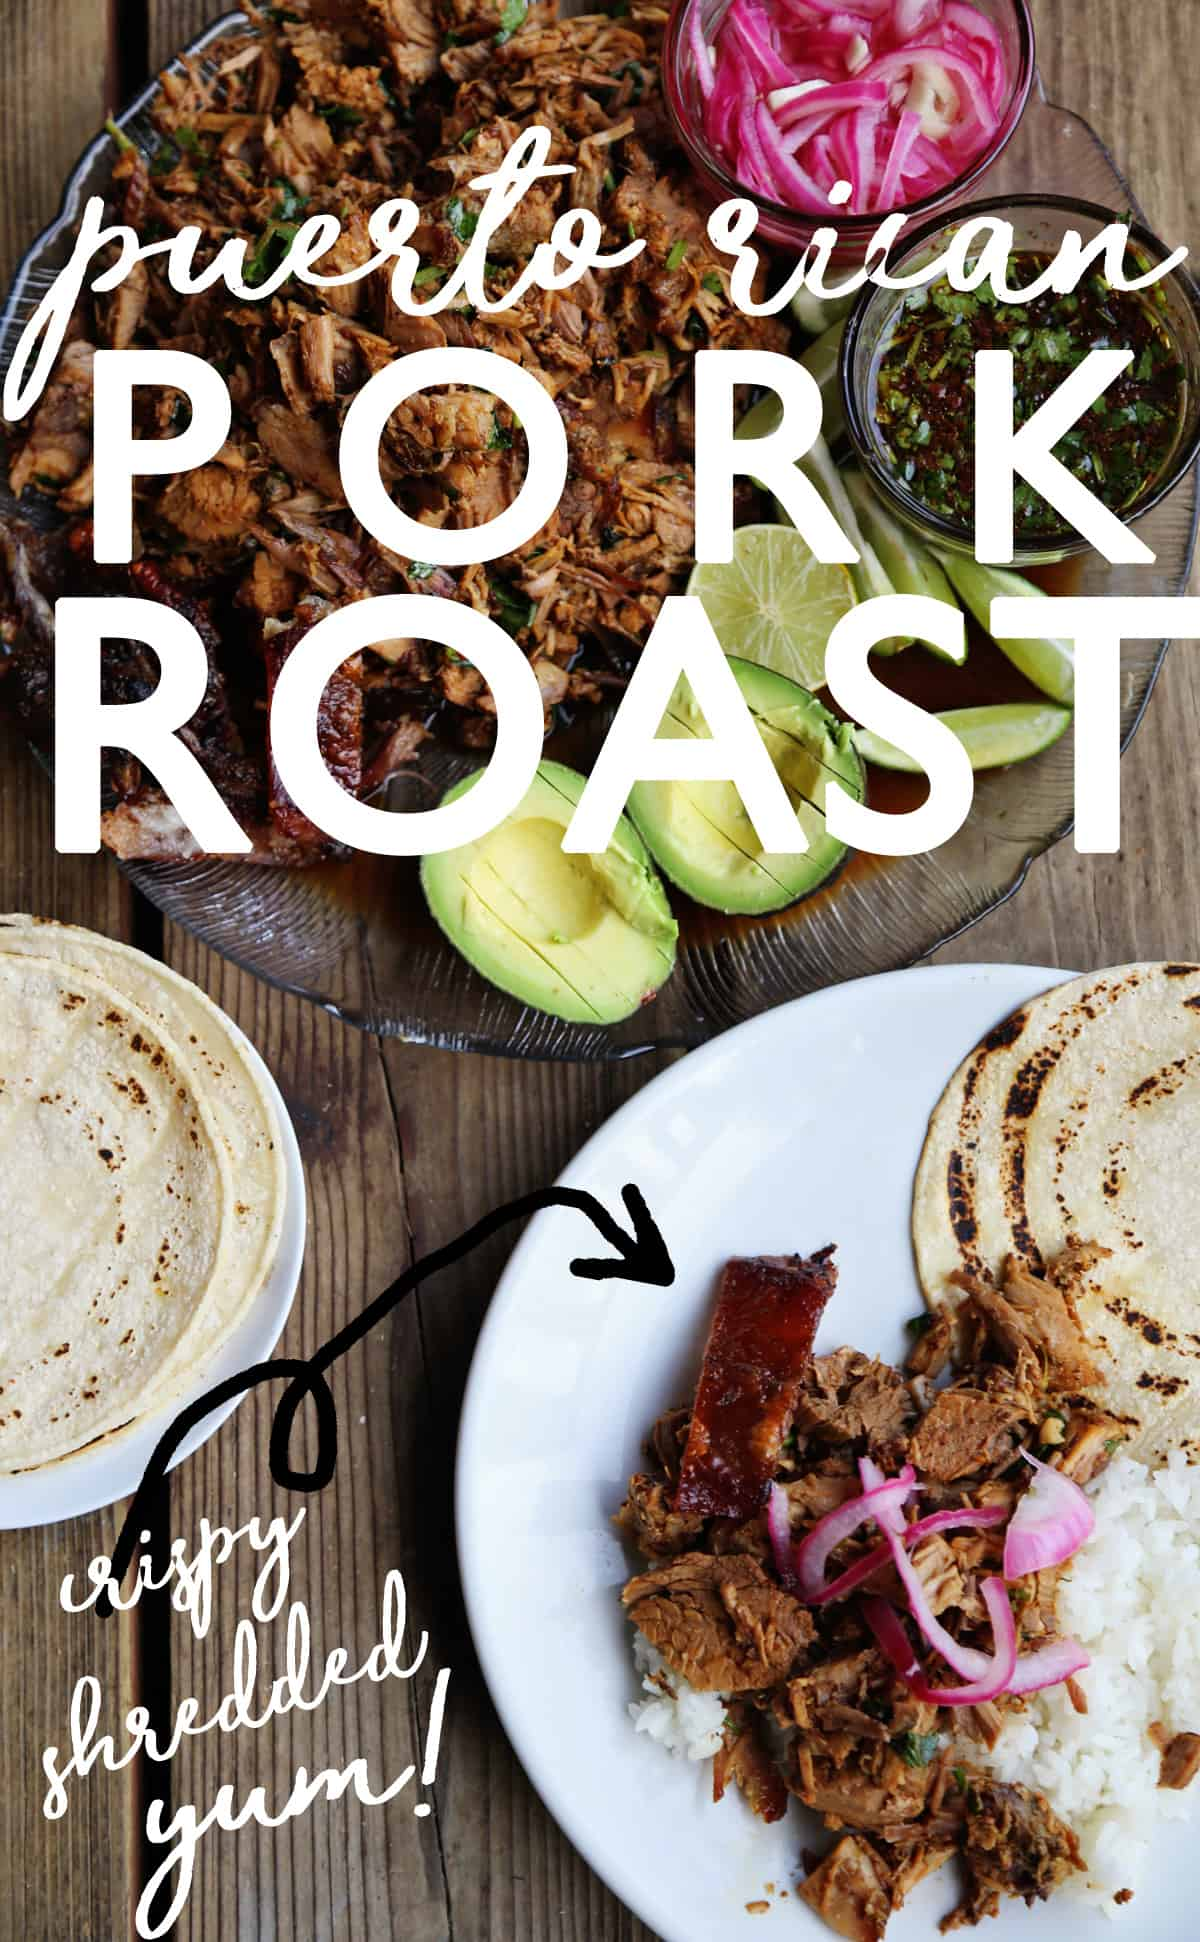 Puerto Rican Pork Roast is covered in cilantro sofrito and slow roasted until tender and shredded with a crispy skin. A great make ahead meal for a crowd!